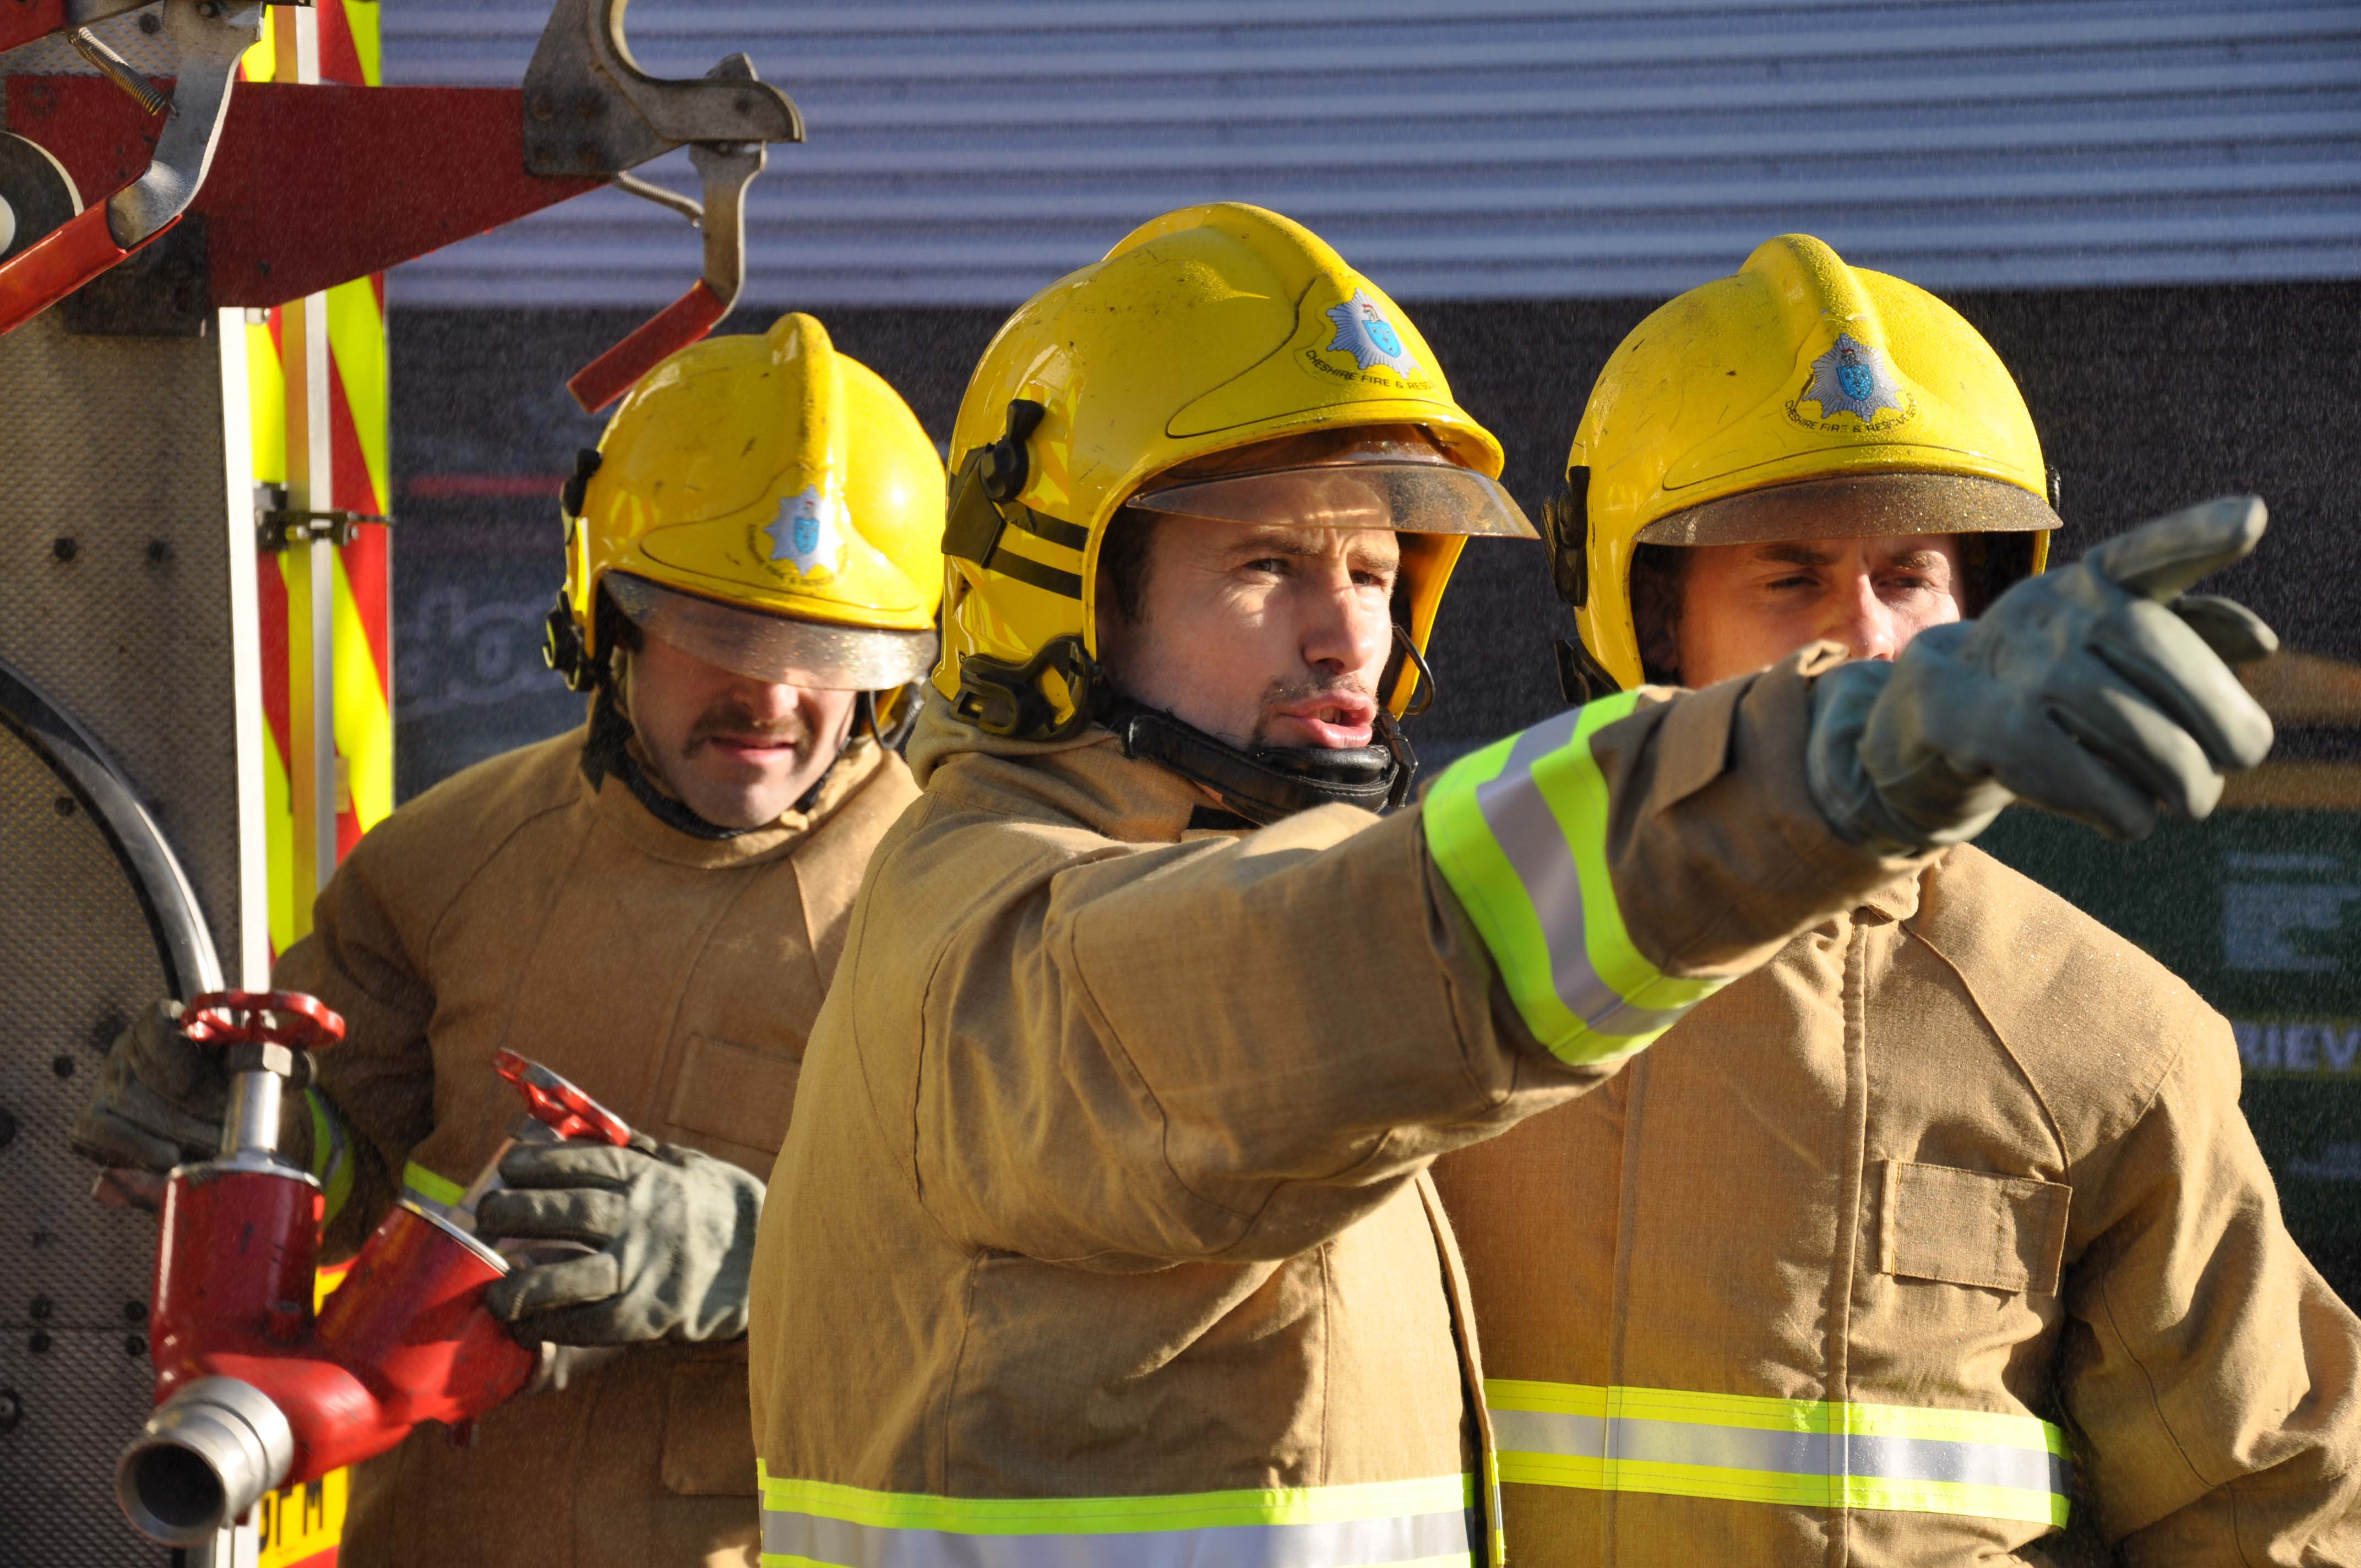 On-call firefighter recruitment open day at Macclesfield ...